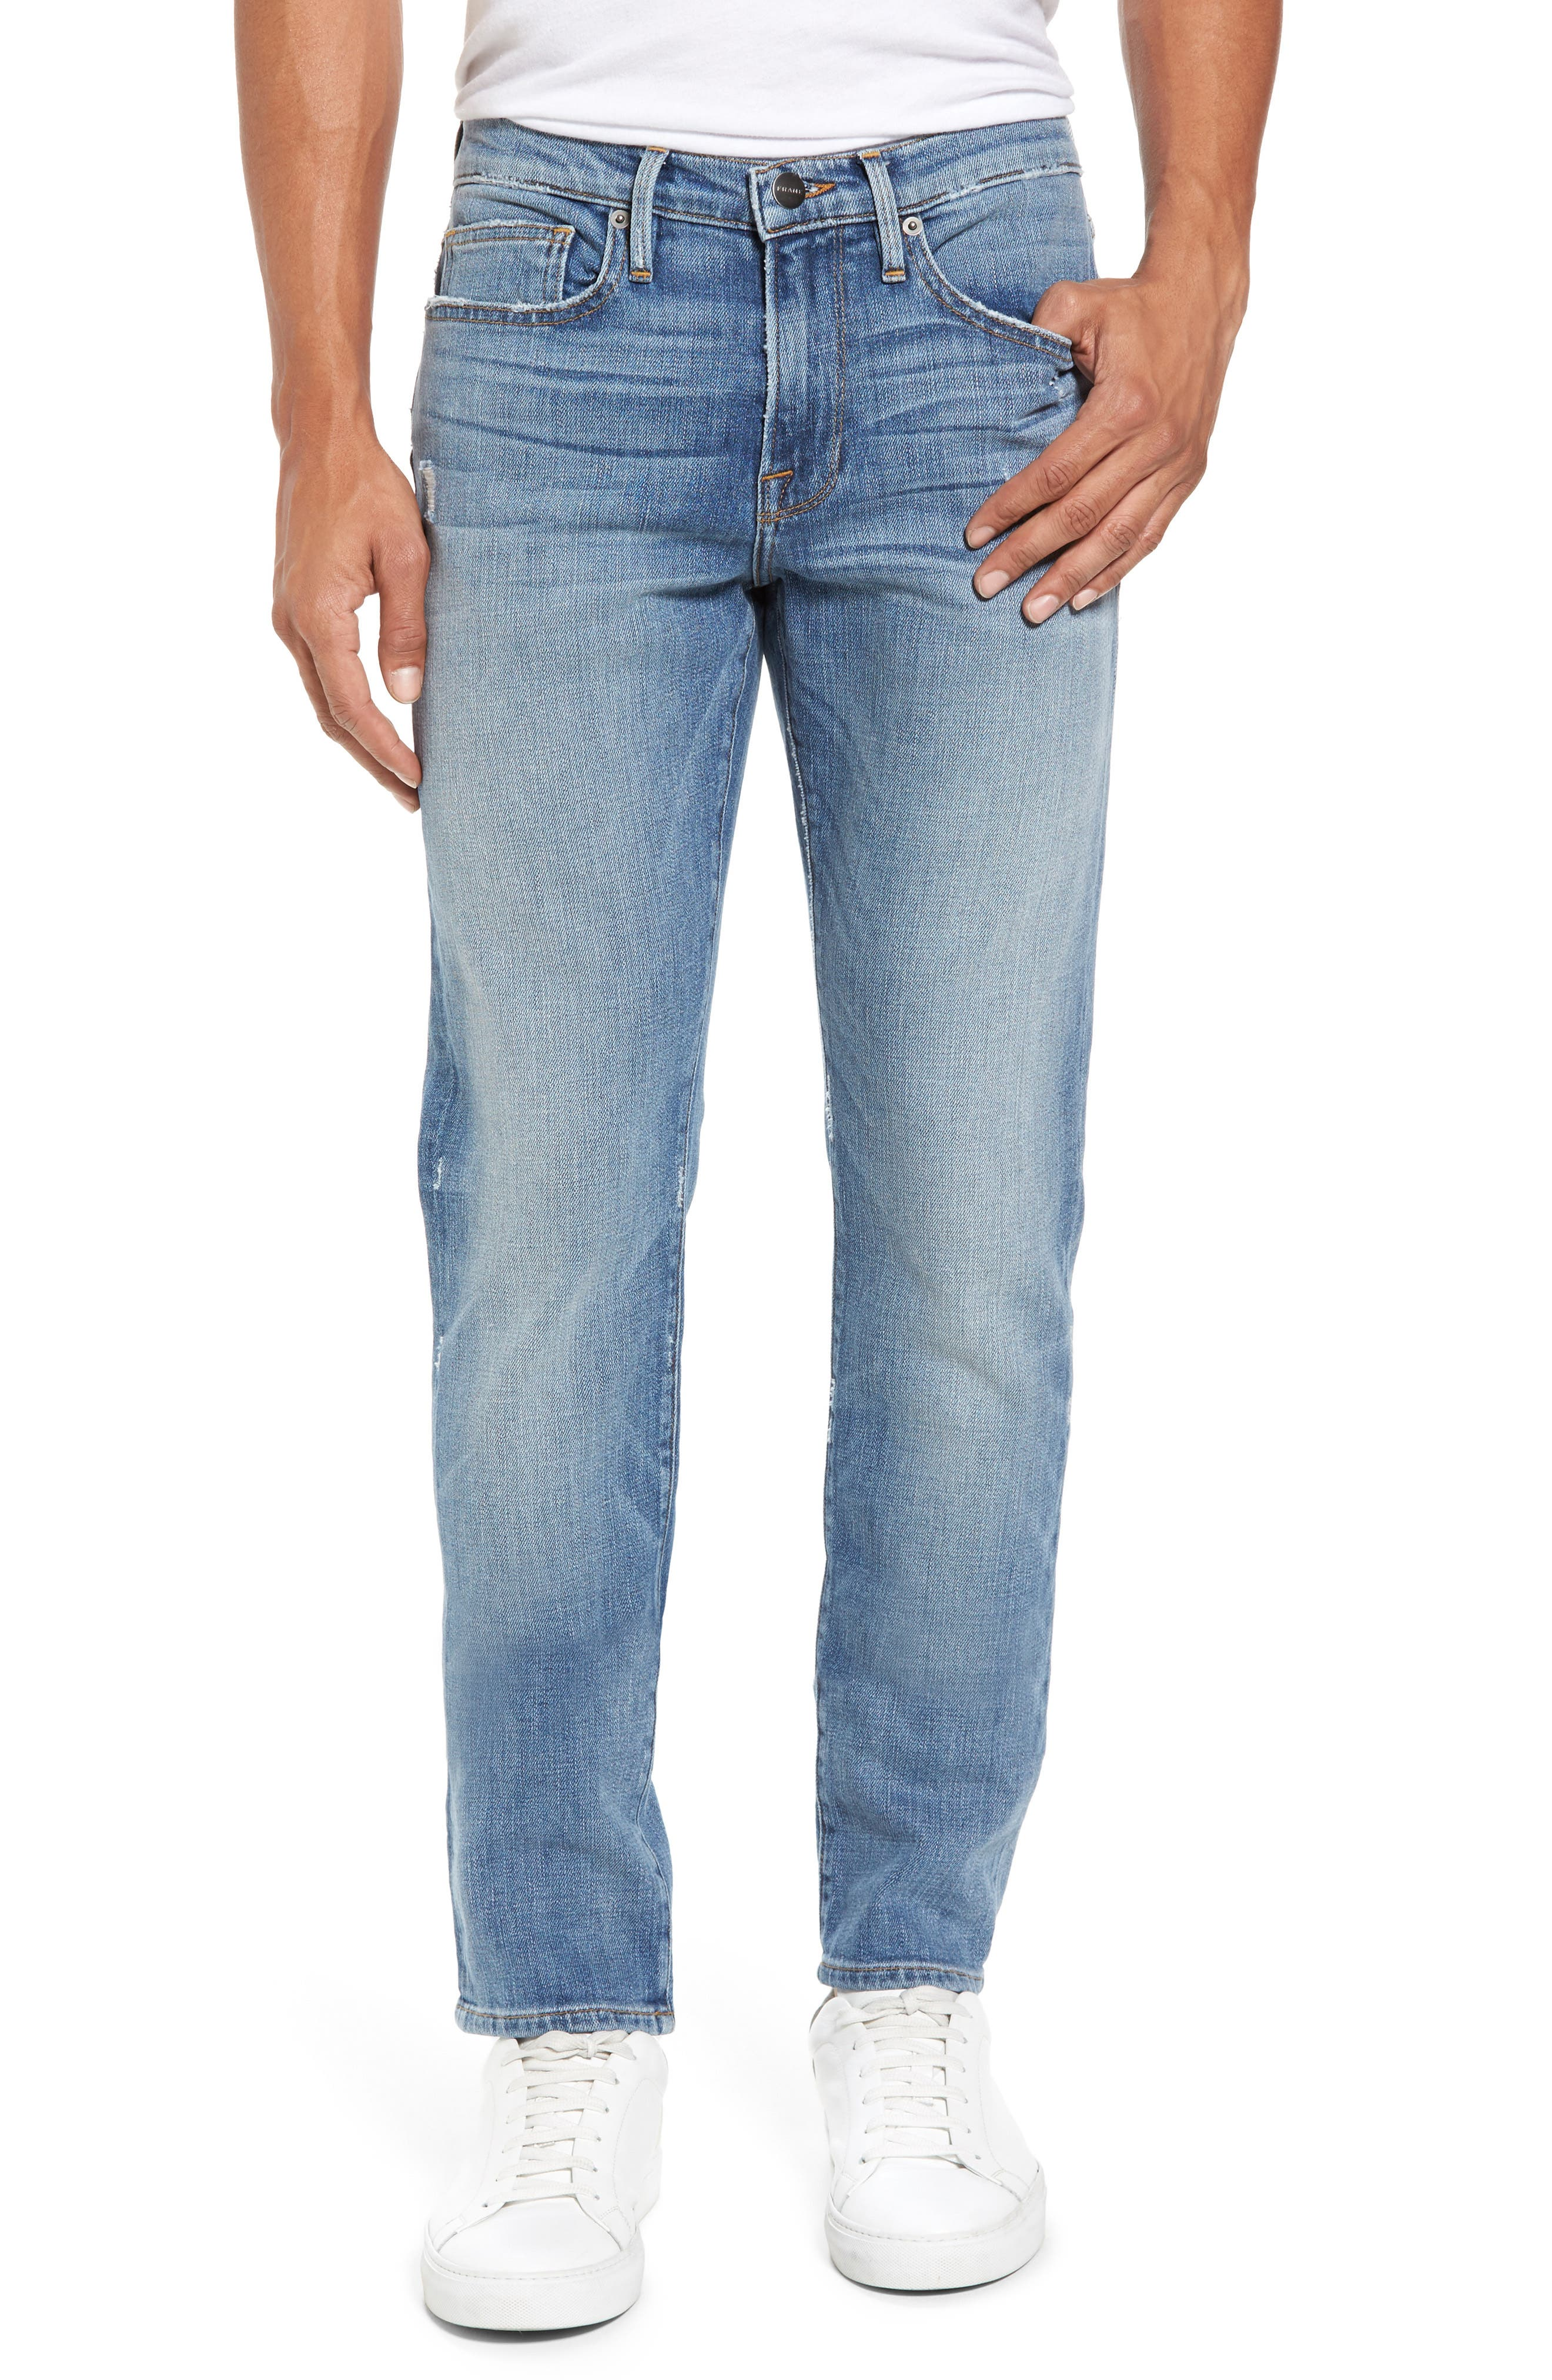 L'Homme Slim Fit Jeans,                             Main thumbnail 1, color,                             Beaudry